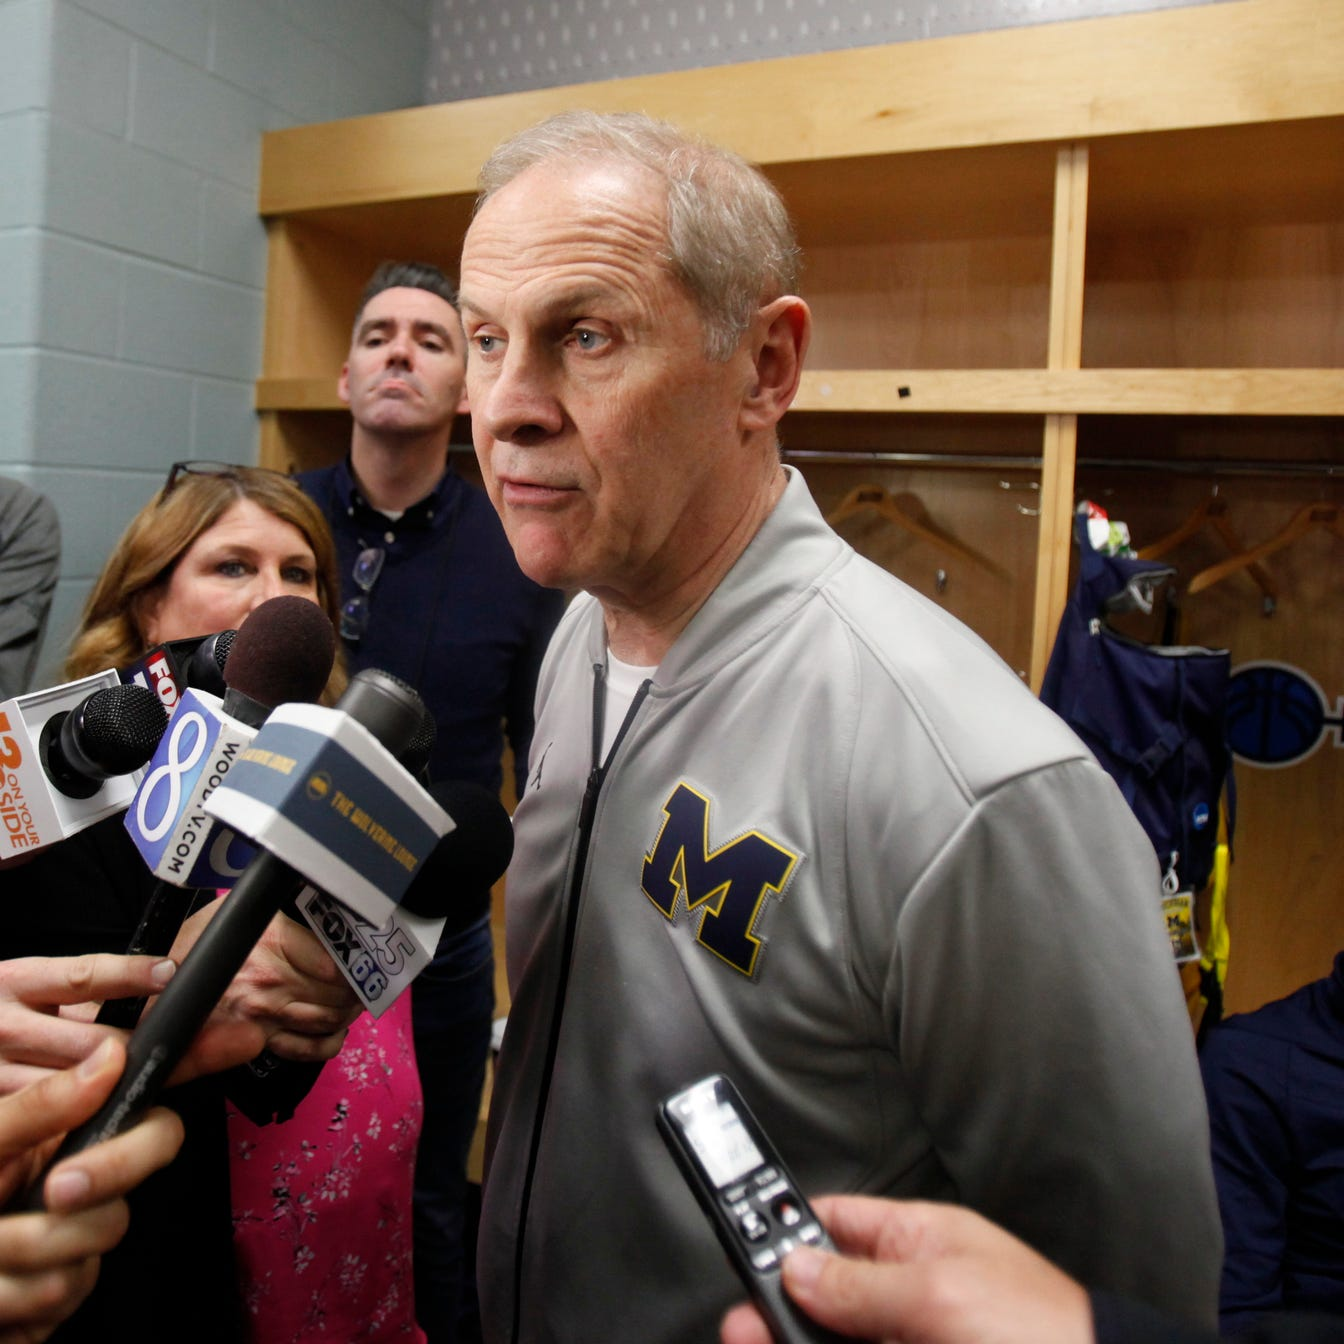 John Beilein's imprint is all over Michigan and Florida. Here's why